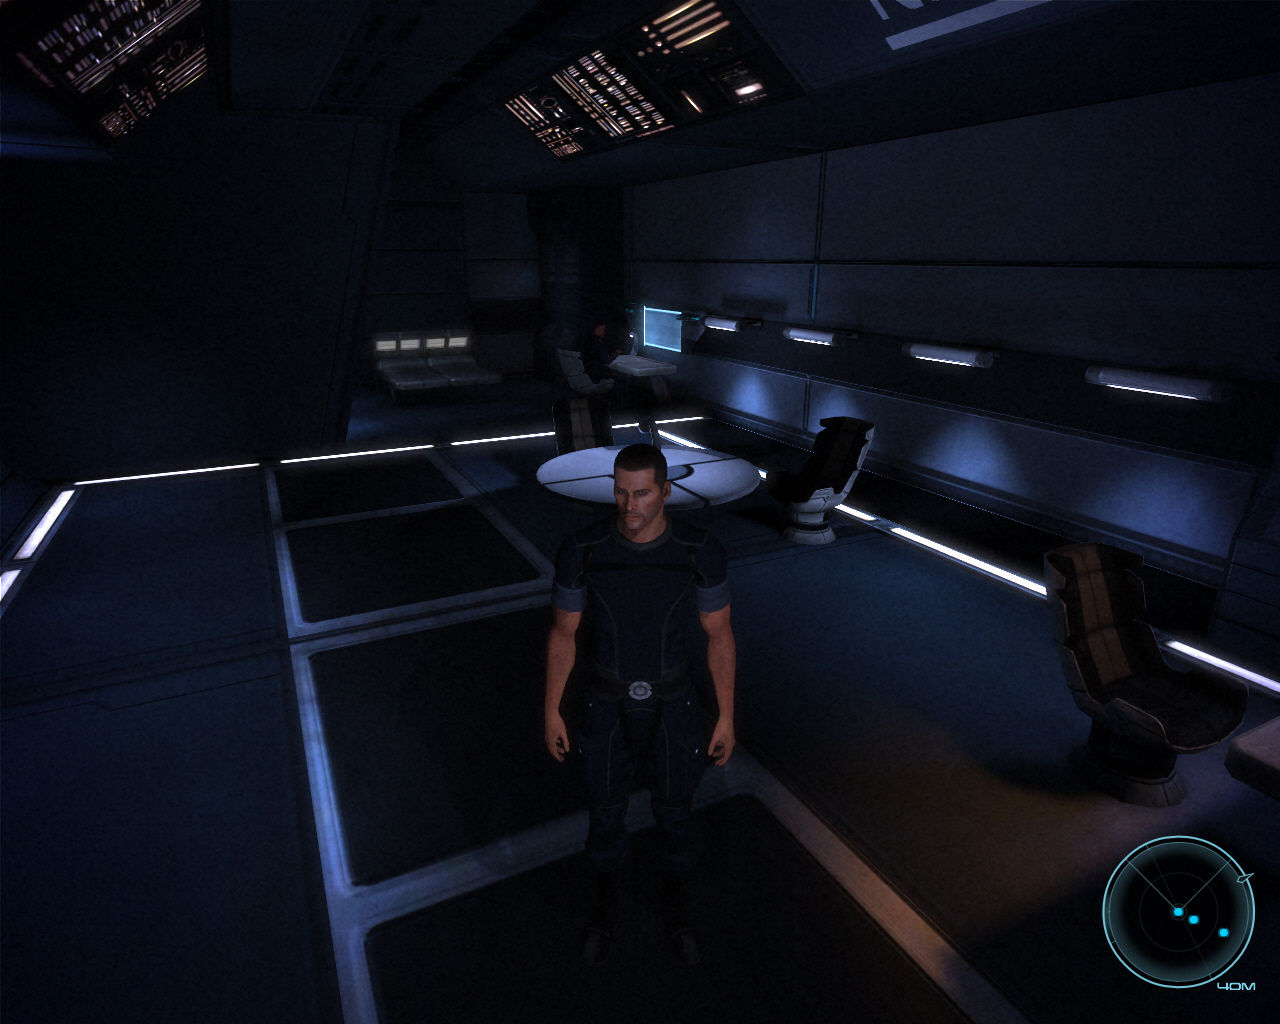 Mass Effect Windows Captain's office